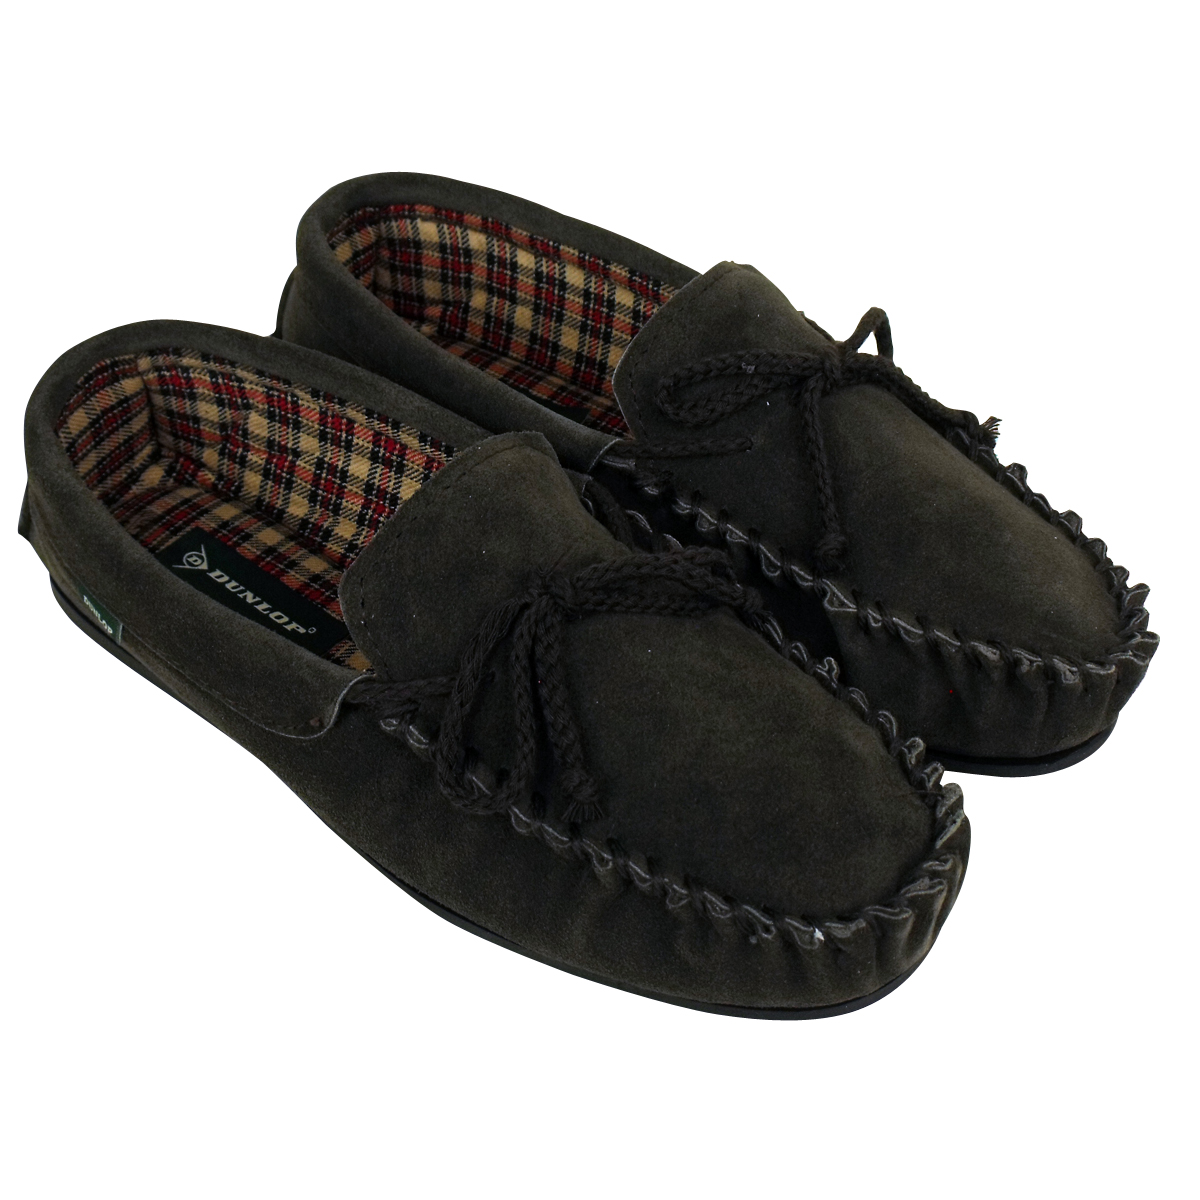 Men Dunlop Moccasin Suede Leather Slippers Moccasins